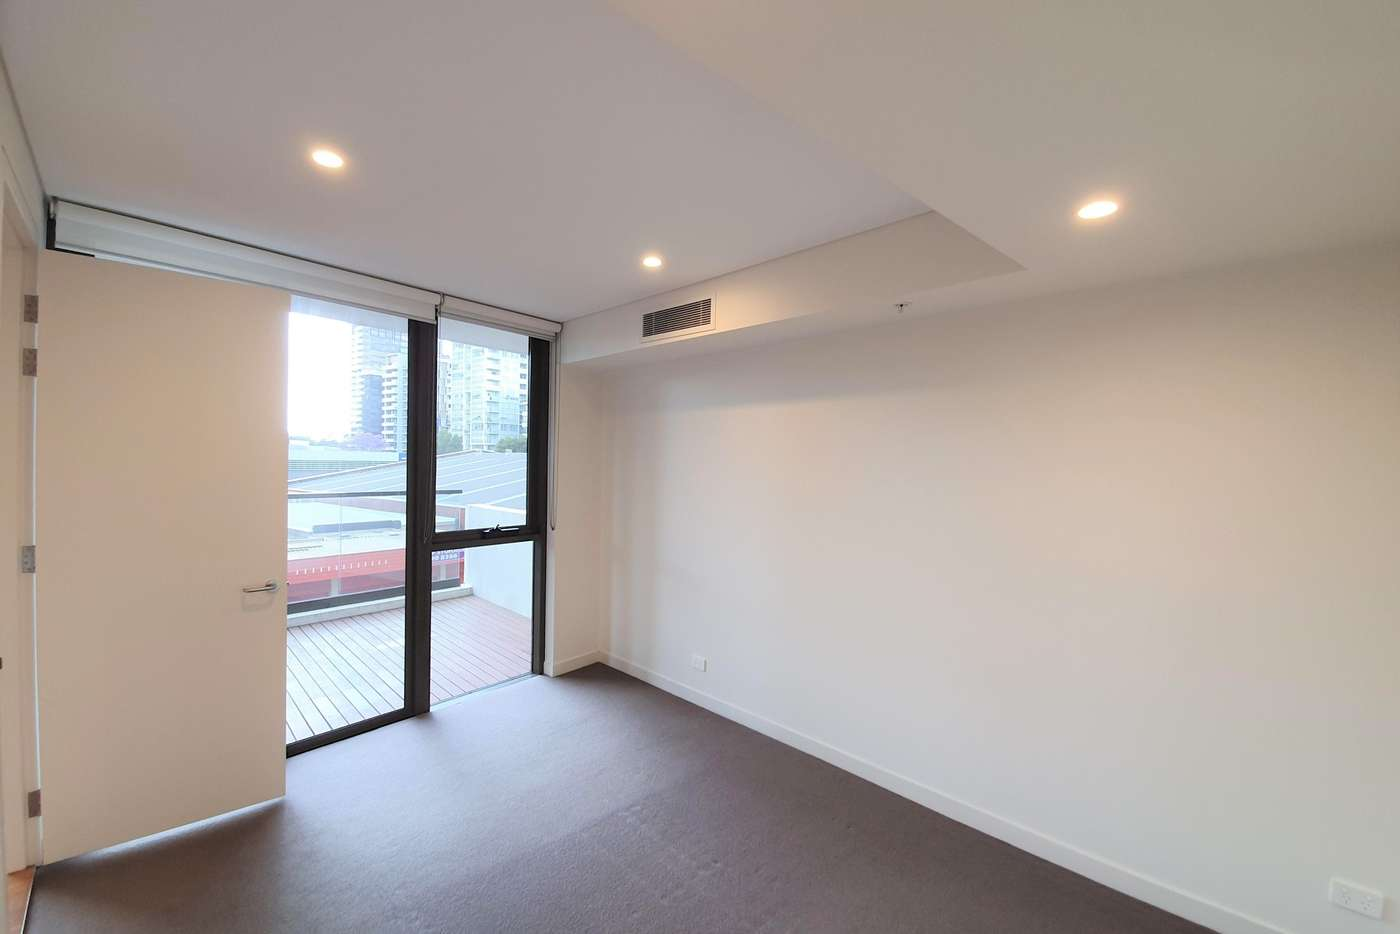 Sixth view of Homely apartment listing, 210/8 Sam Sing Street, Waterloo NSW 2017